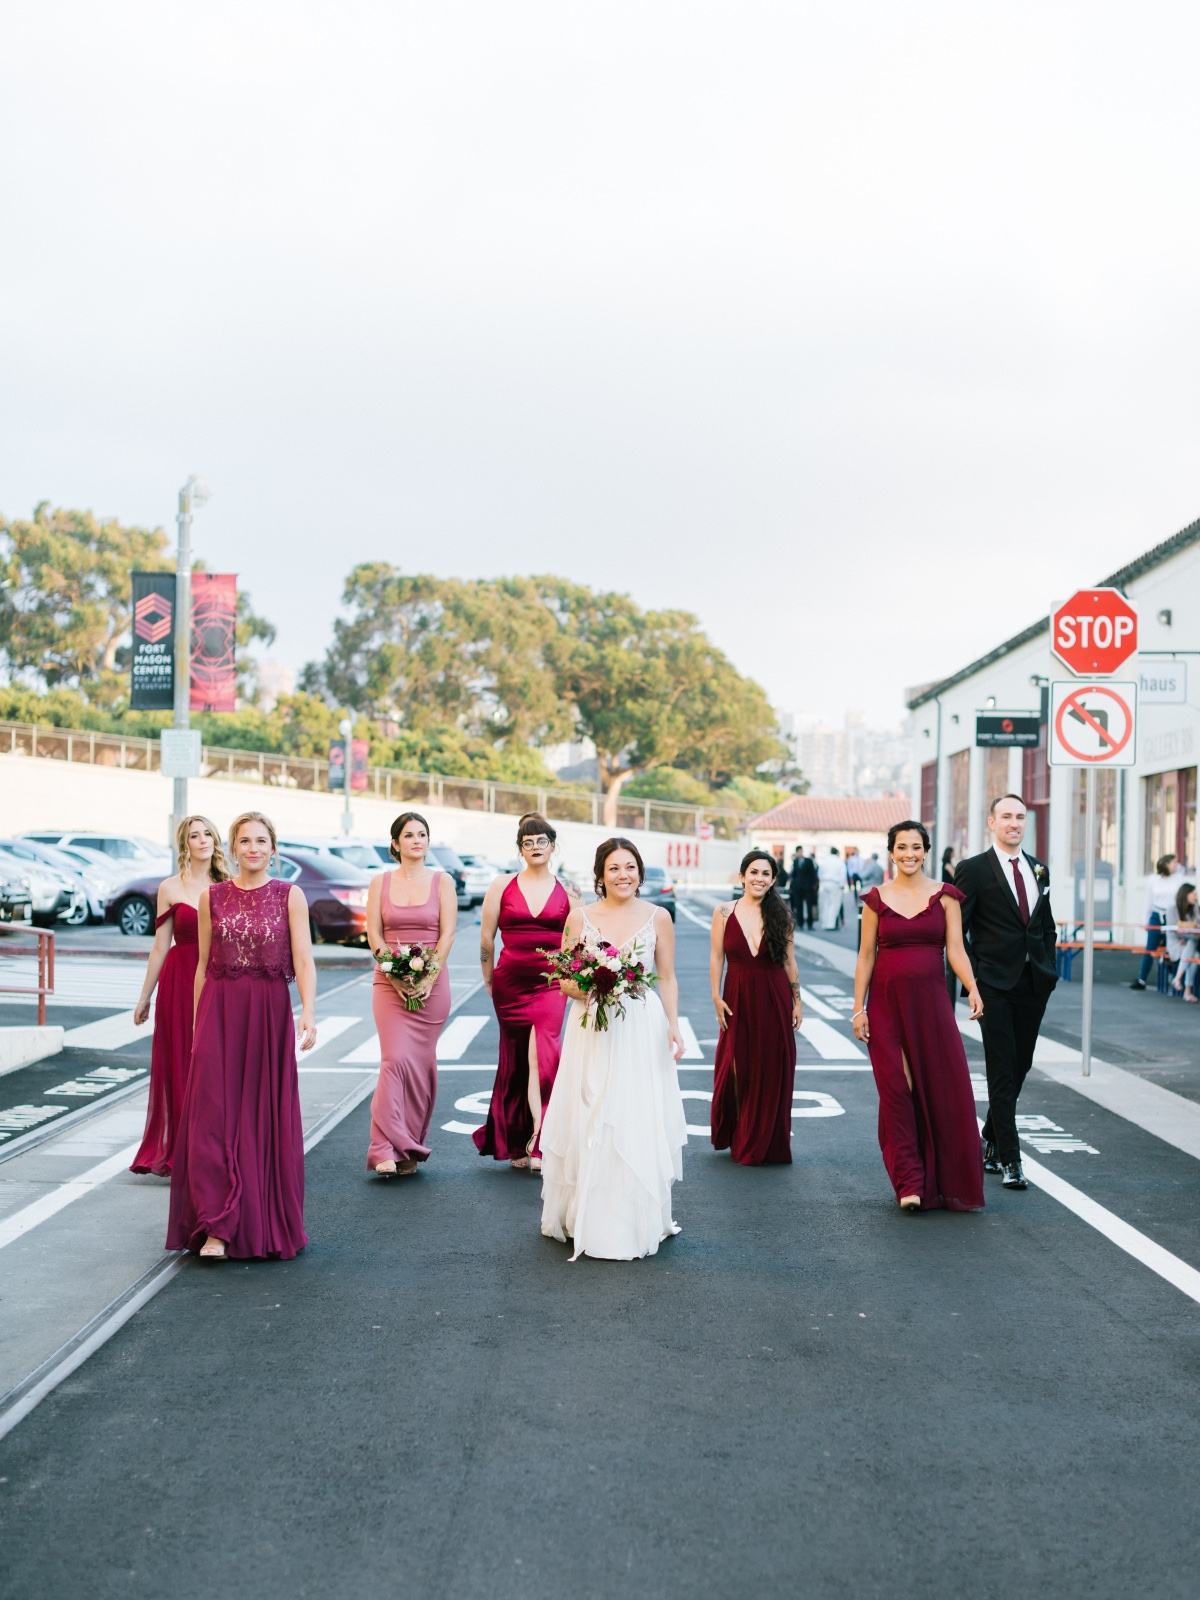 Bridesmaids in pink and burgundy